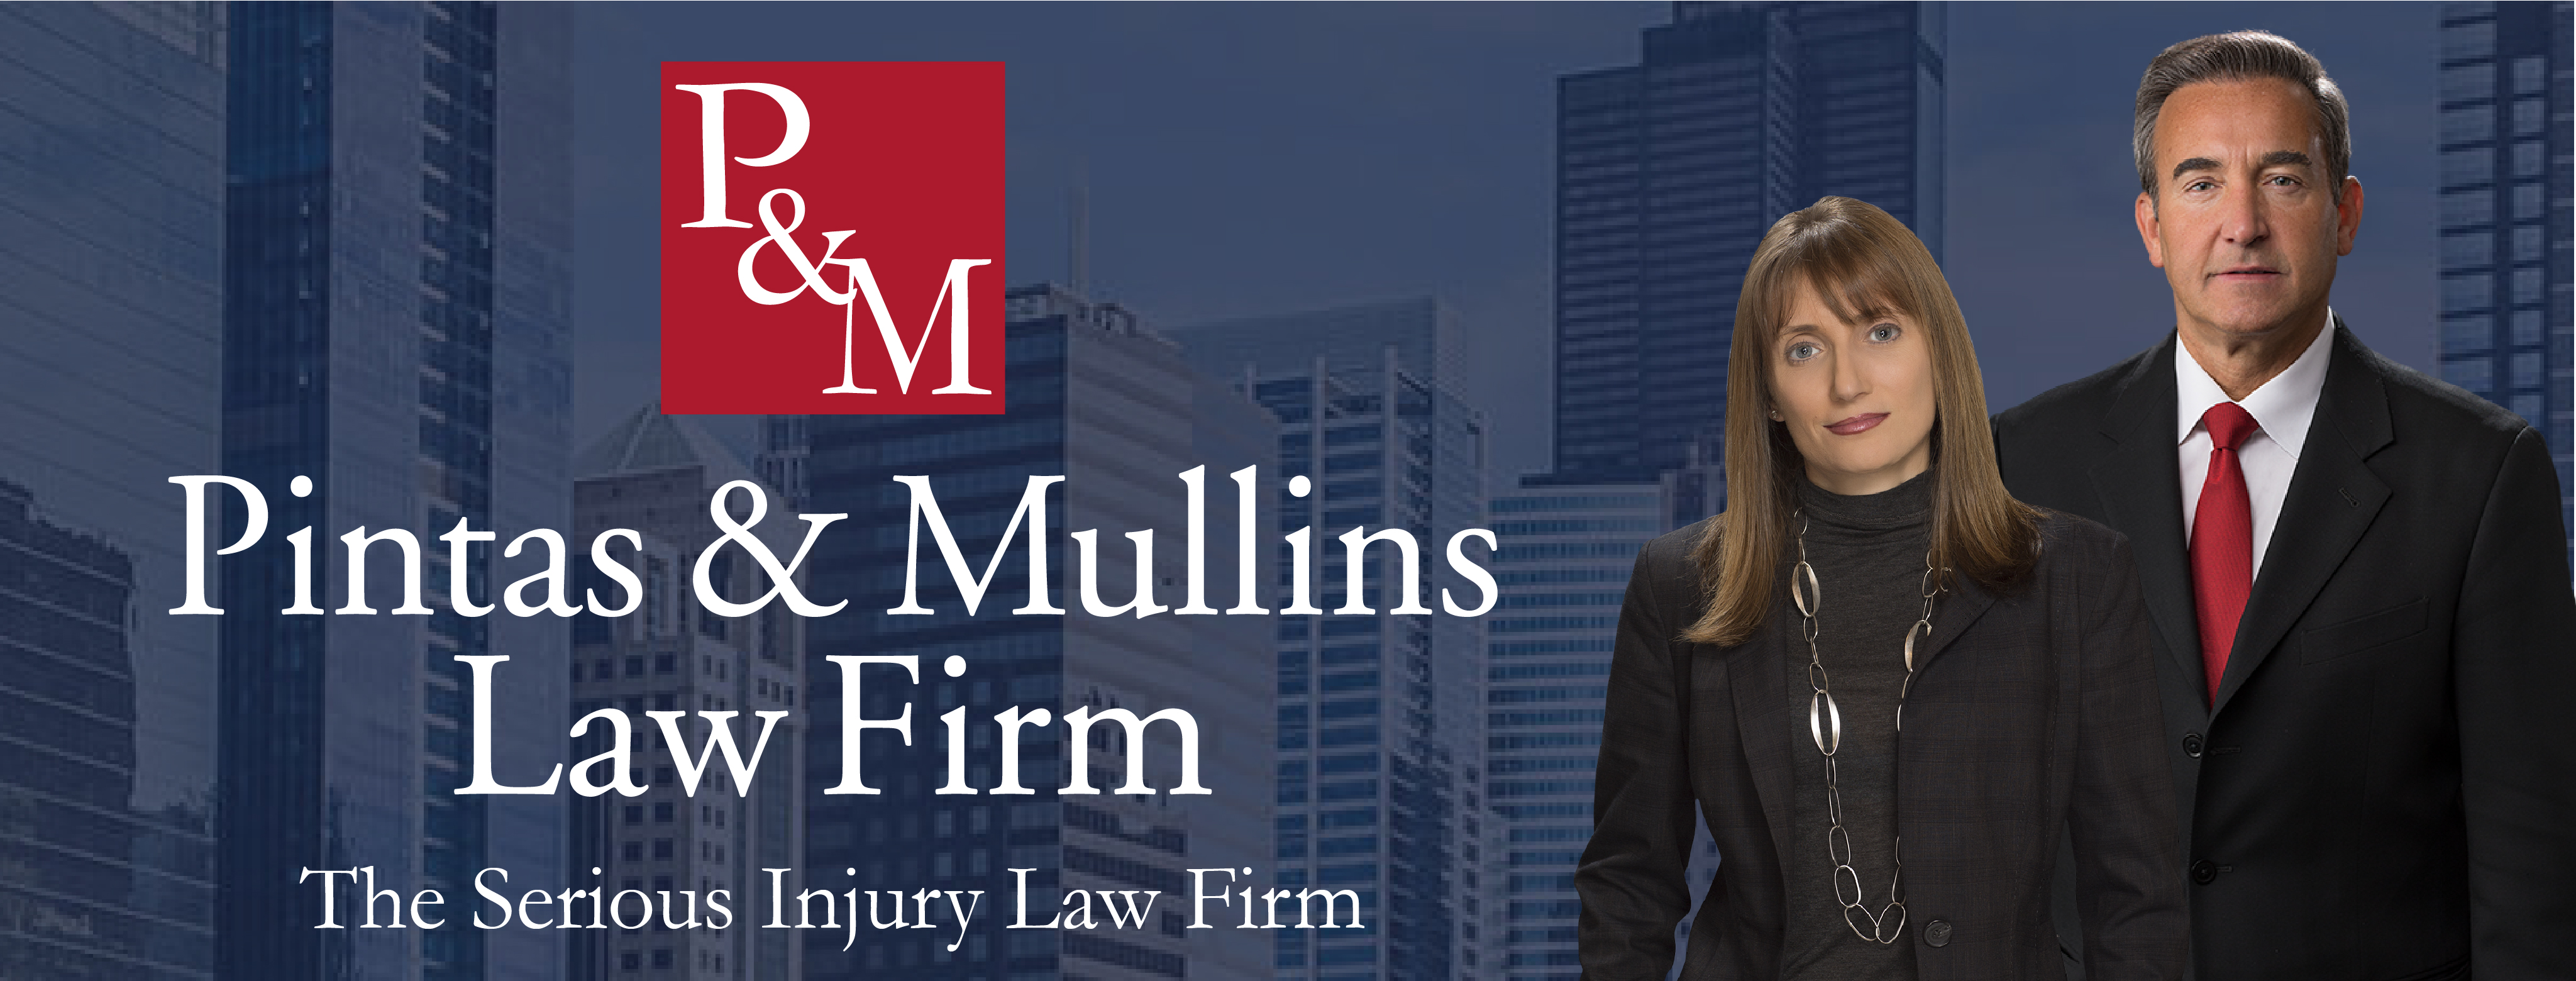 Pintas & Mullins Law Firm | Personal Injury Law at 368 W Huron St - Chicago IL - Reviews - Photos - Phone Number